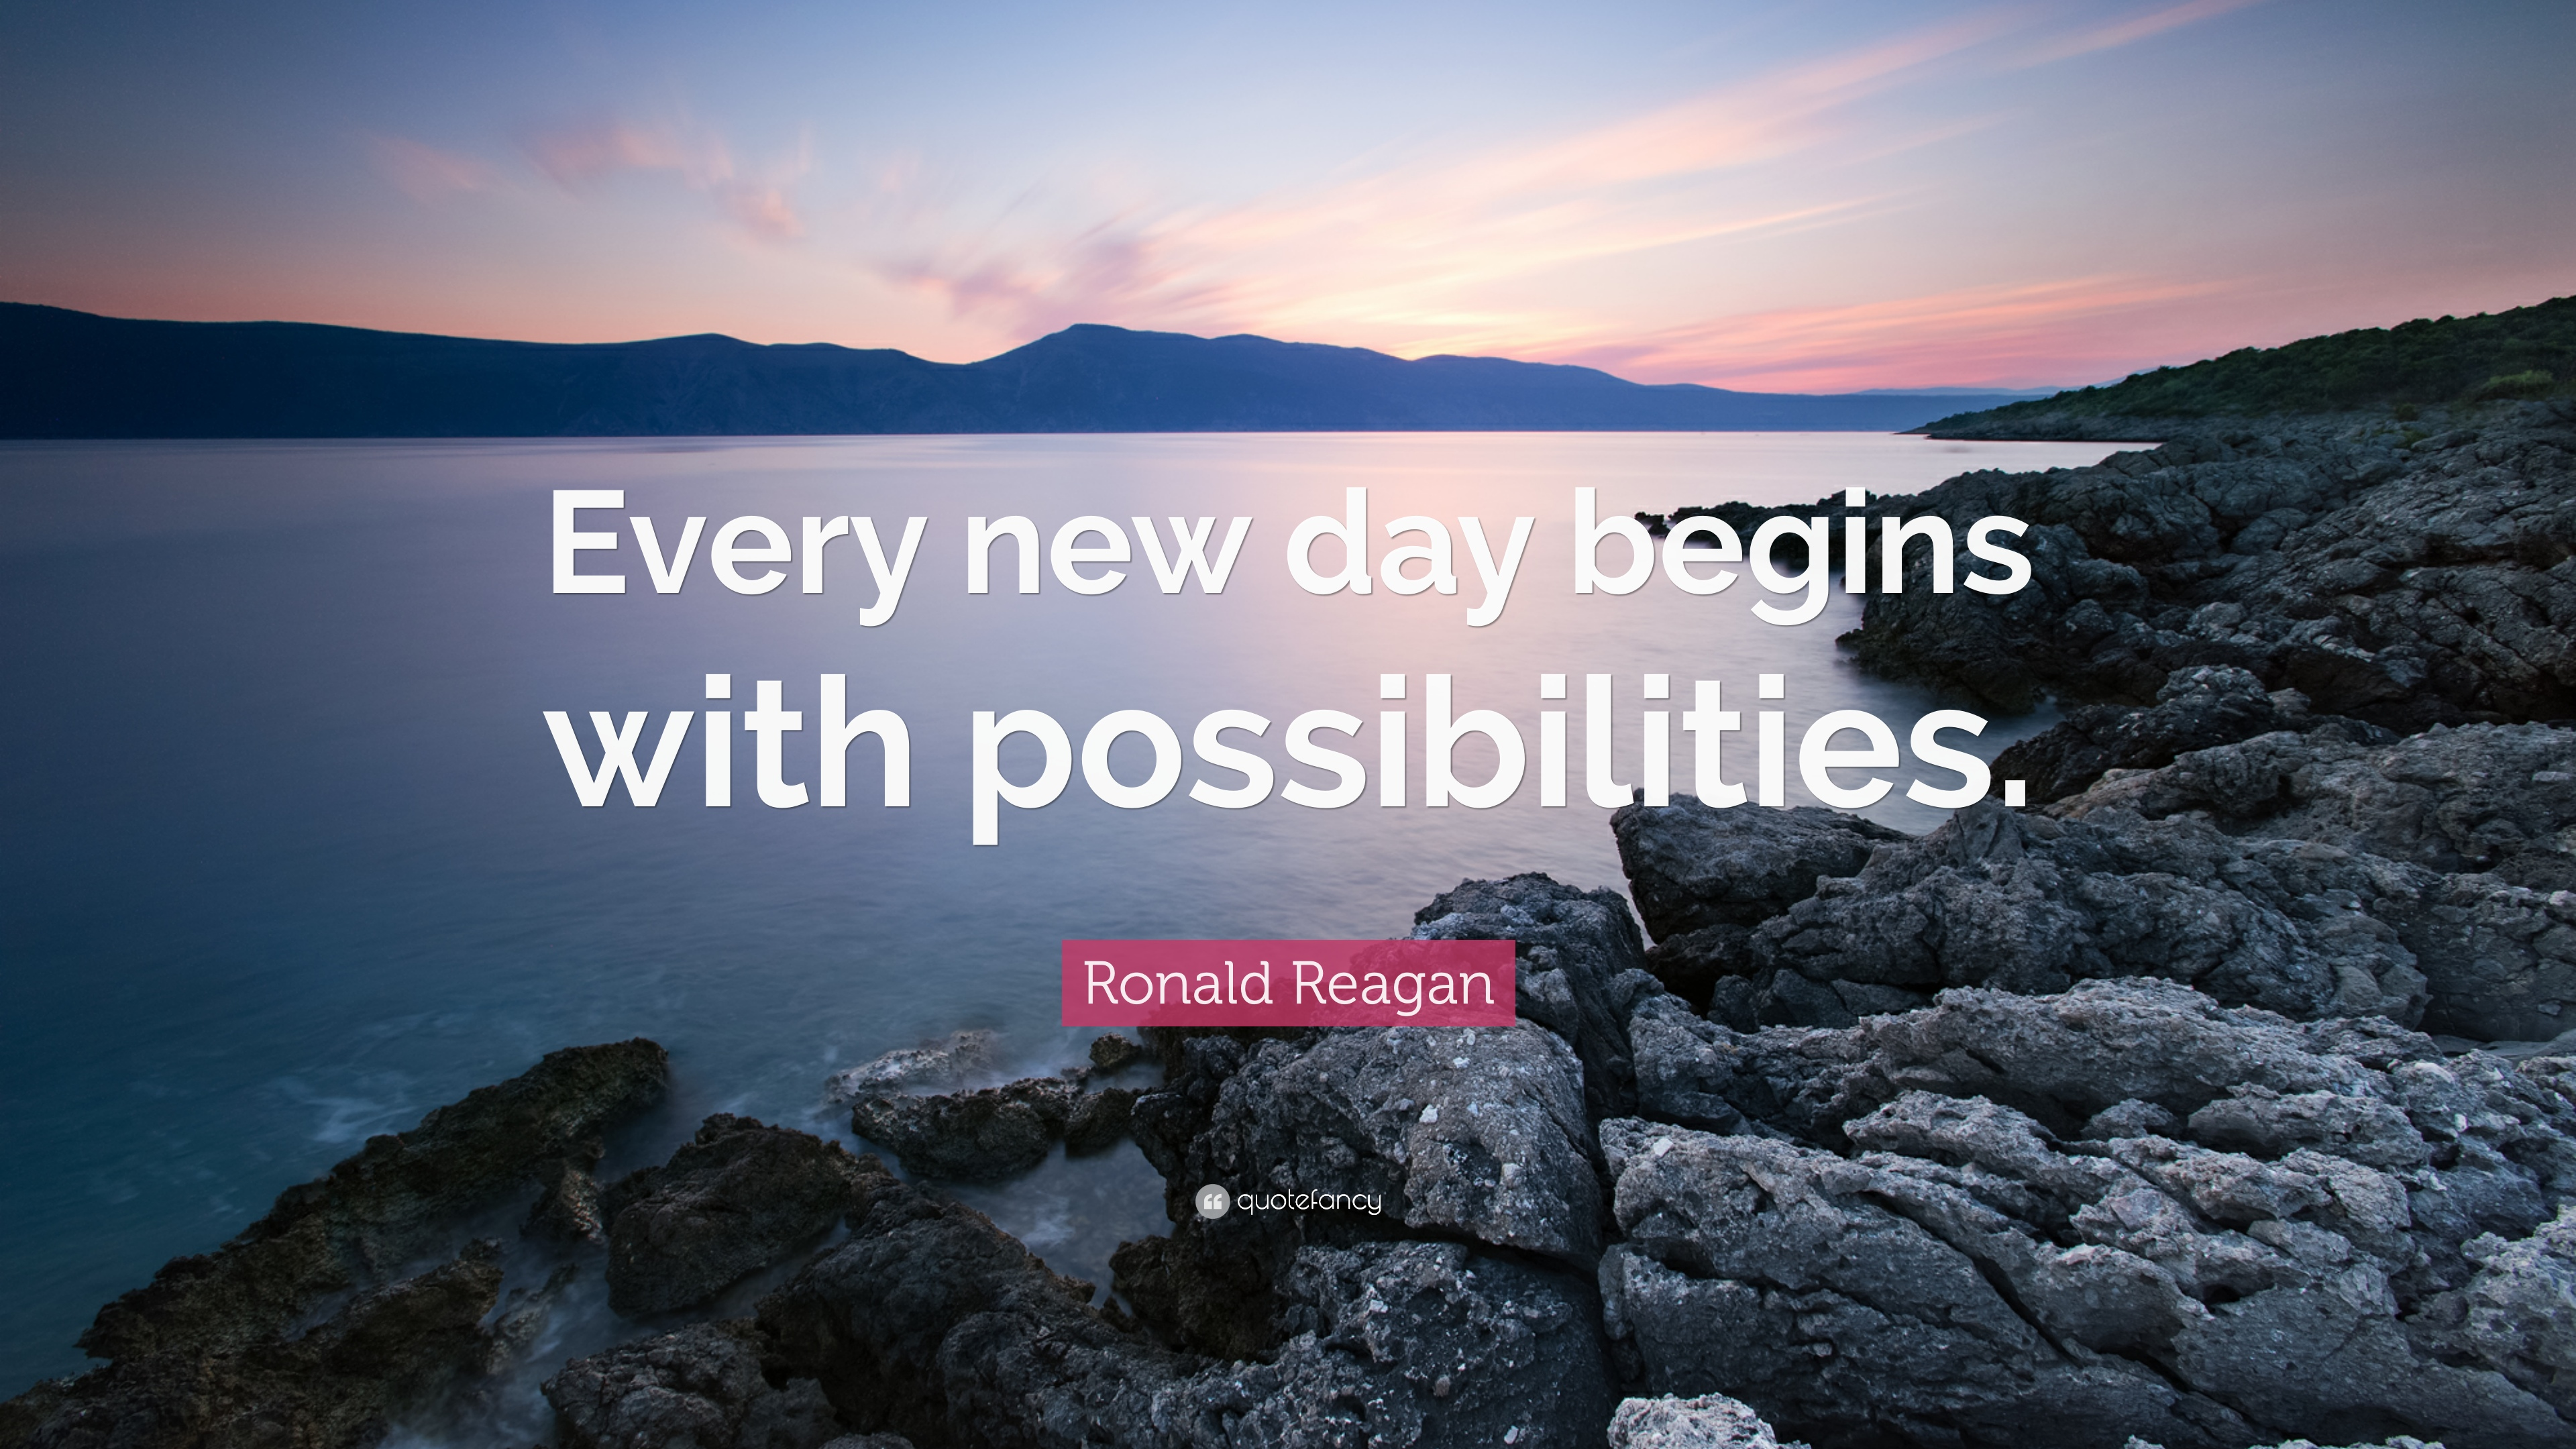 Ronald Reagan Quote Every New Day Begins With Possibilities 12